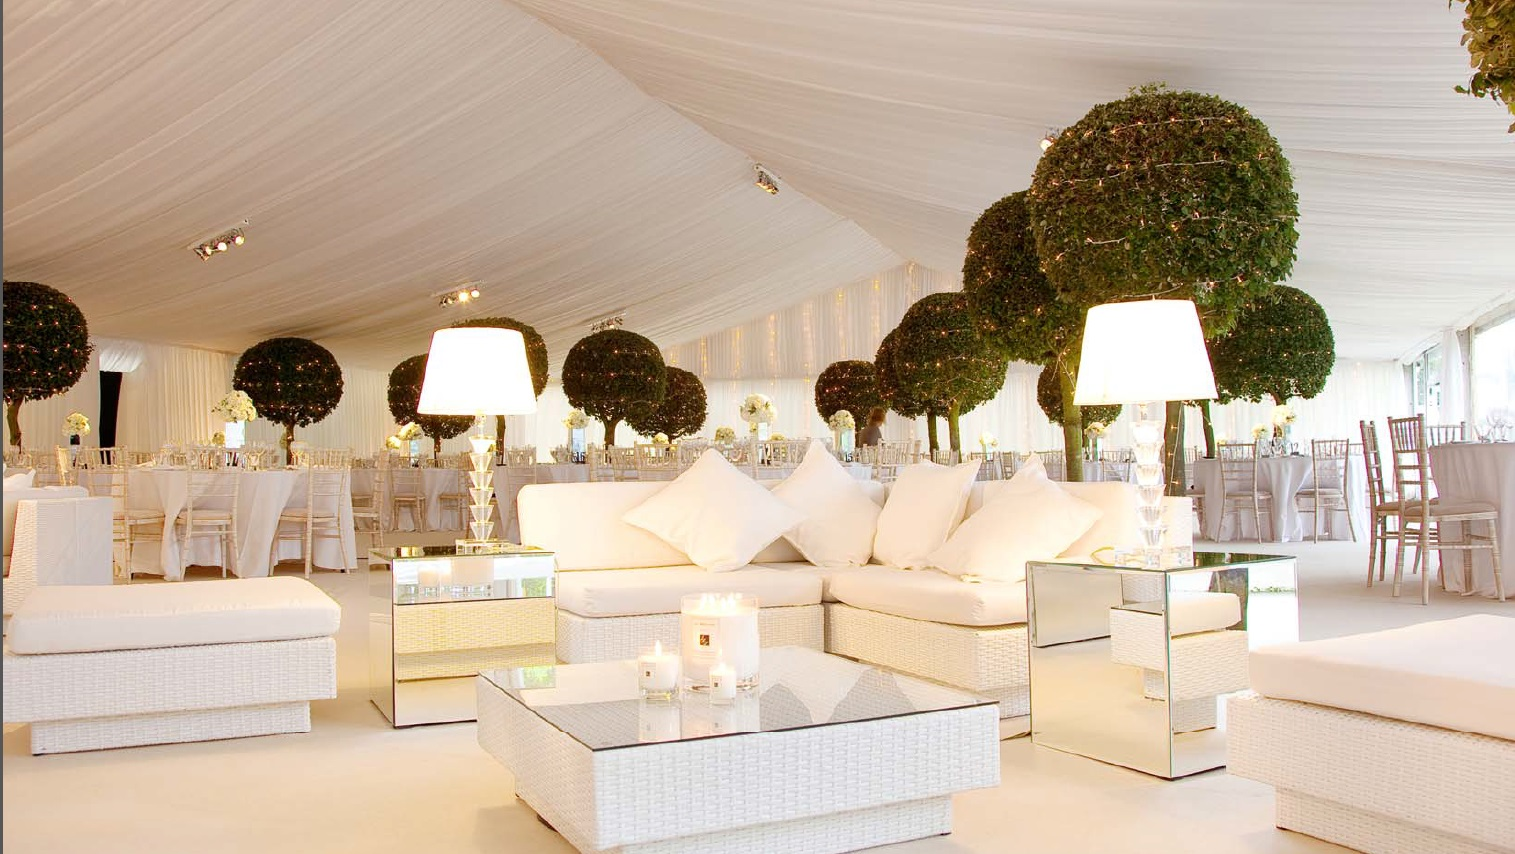 White event furniture hire in marquee